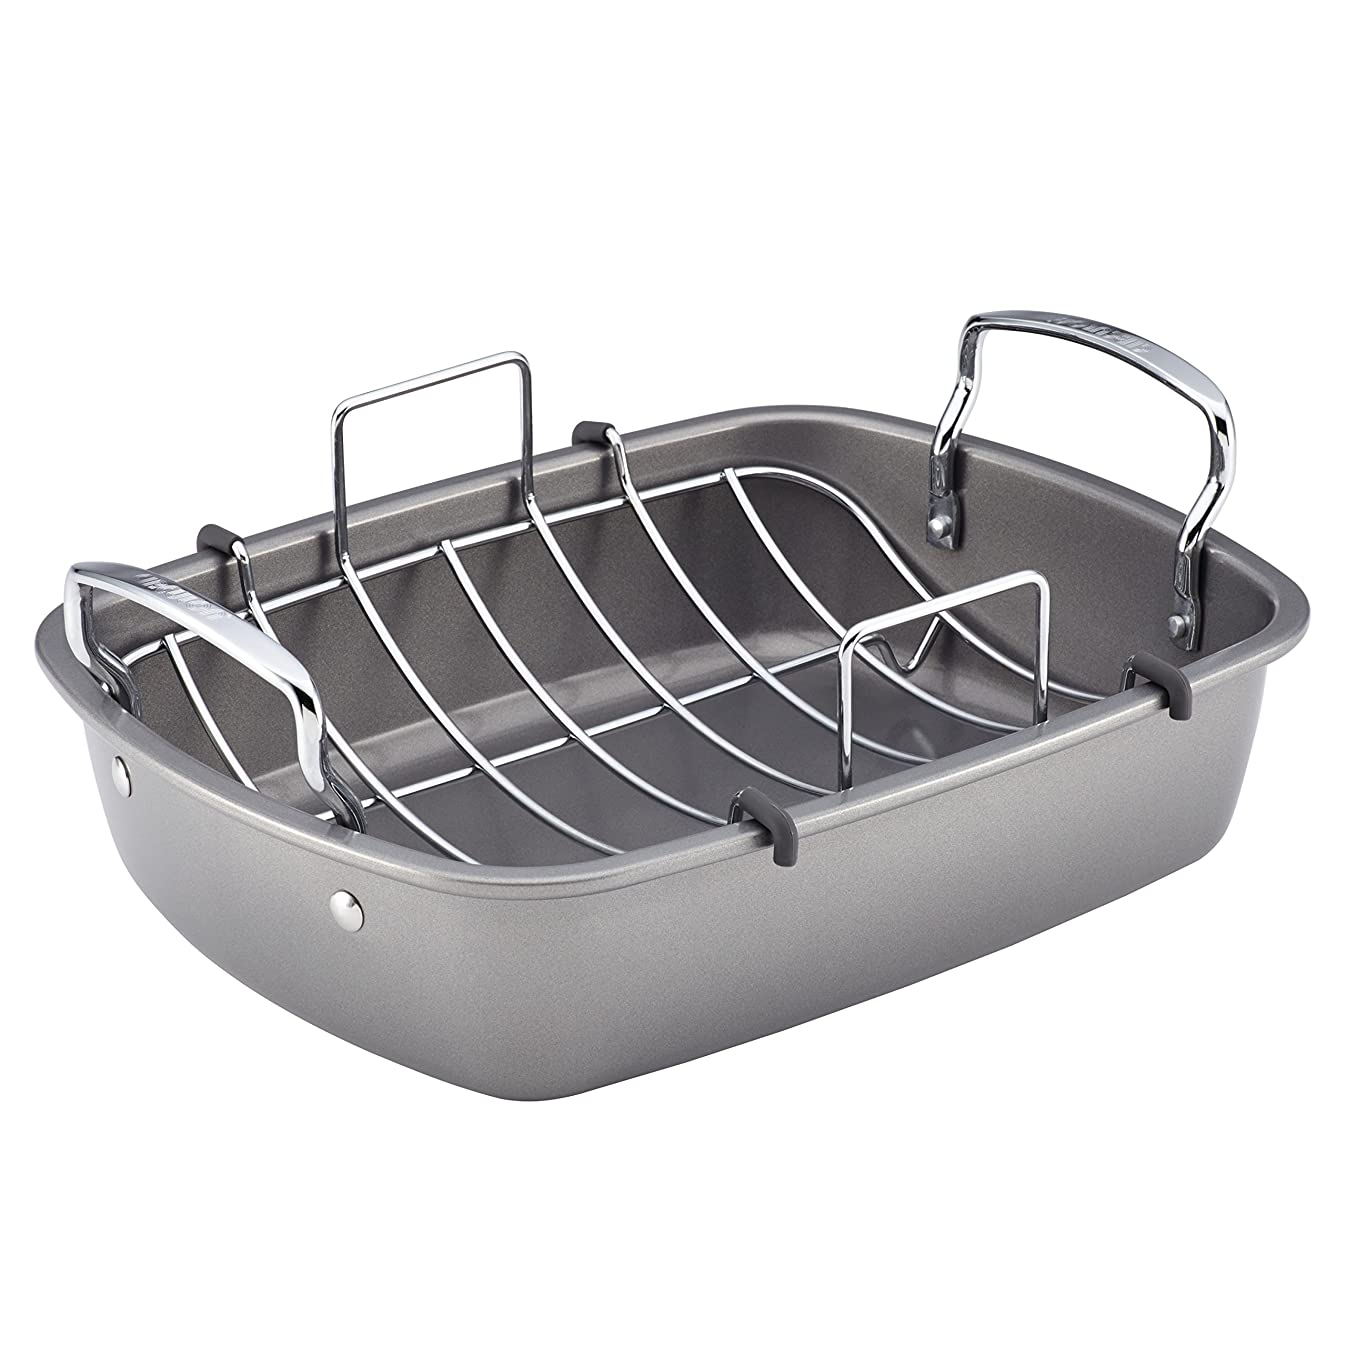 Circulon 56539 Nonstick Bakeware Roaster with U-Rack, 17